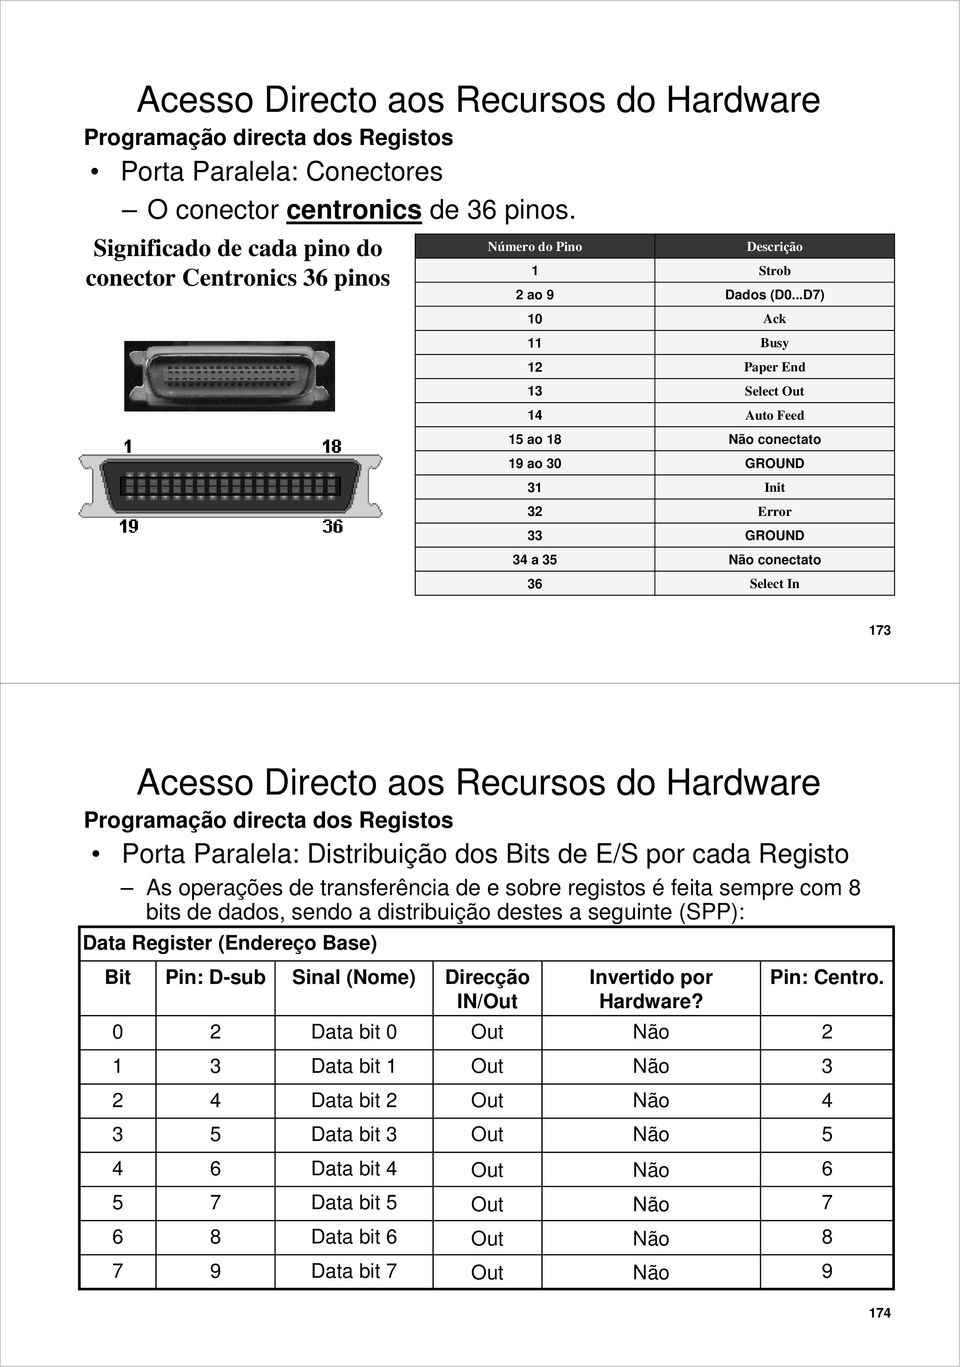 ..D7) Ack Busy Paper End Select Auto Feed conectato GROUND it Error GROUND conectato Select 173 Porta Paralela: Distribuição dos Bits de E/S por cada Registo As operações de transferência